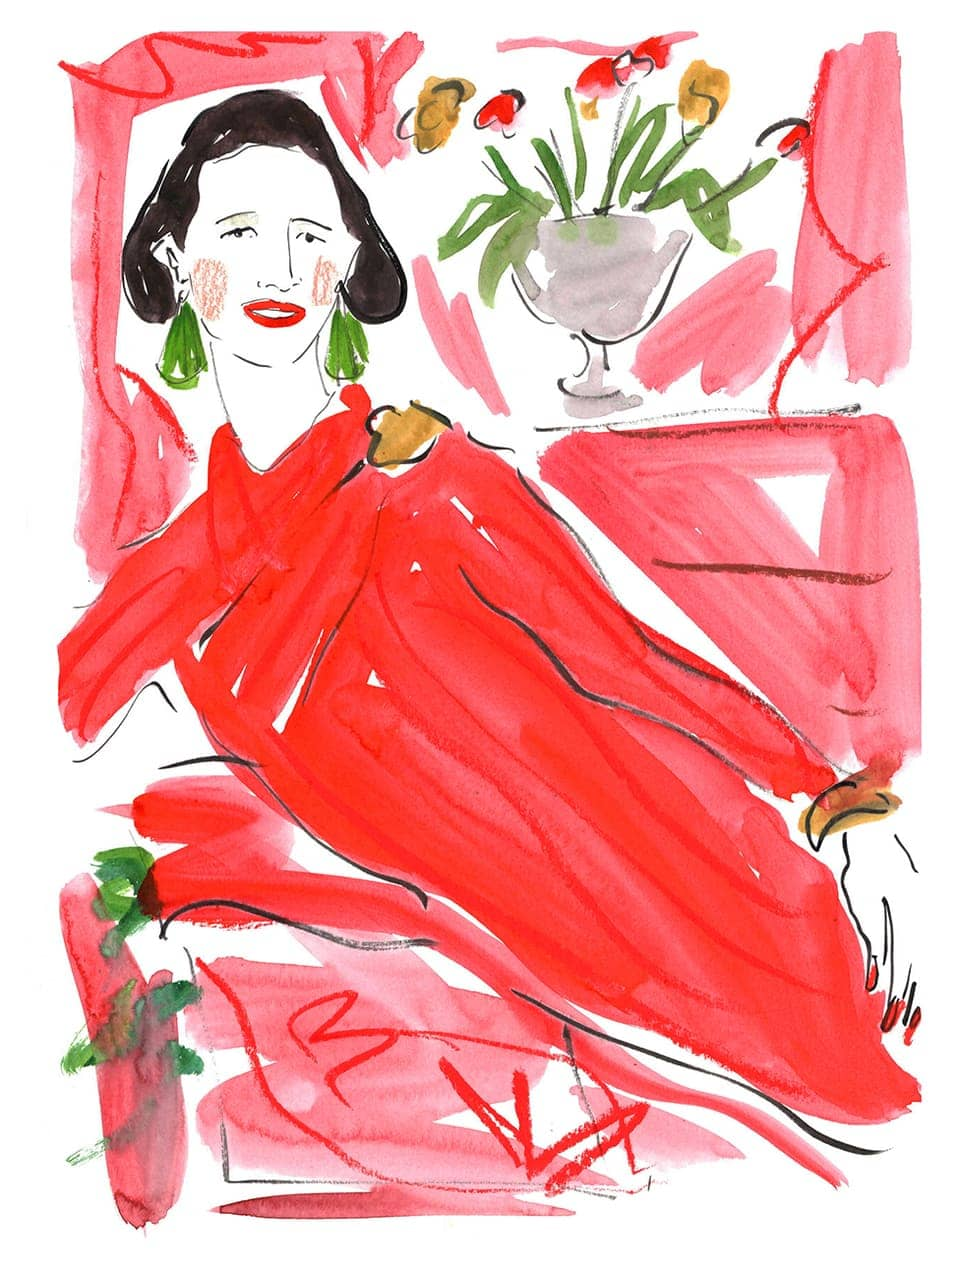 An illustration of Diana Vreeland by Luke Edward Hall, taken from a new book about the fashion editor, Bon Mots